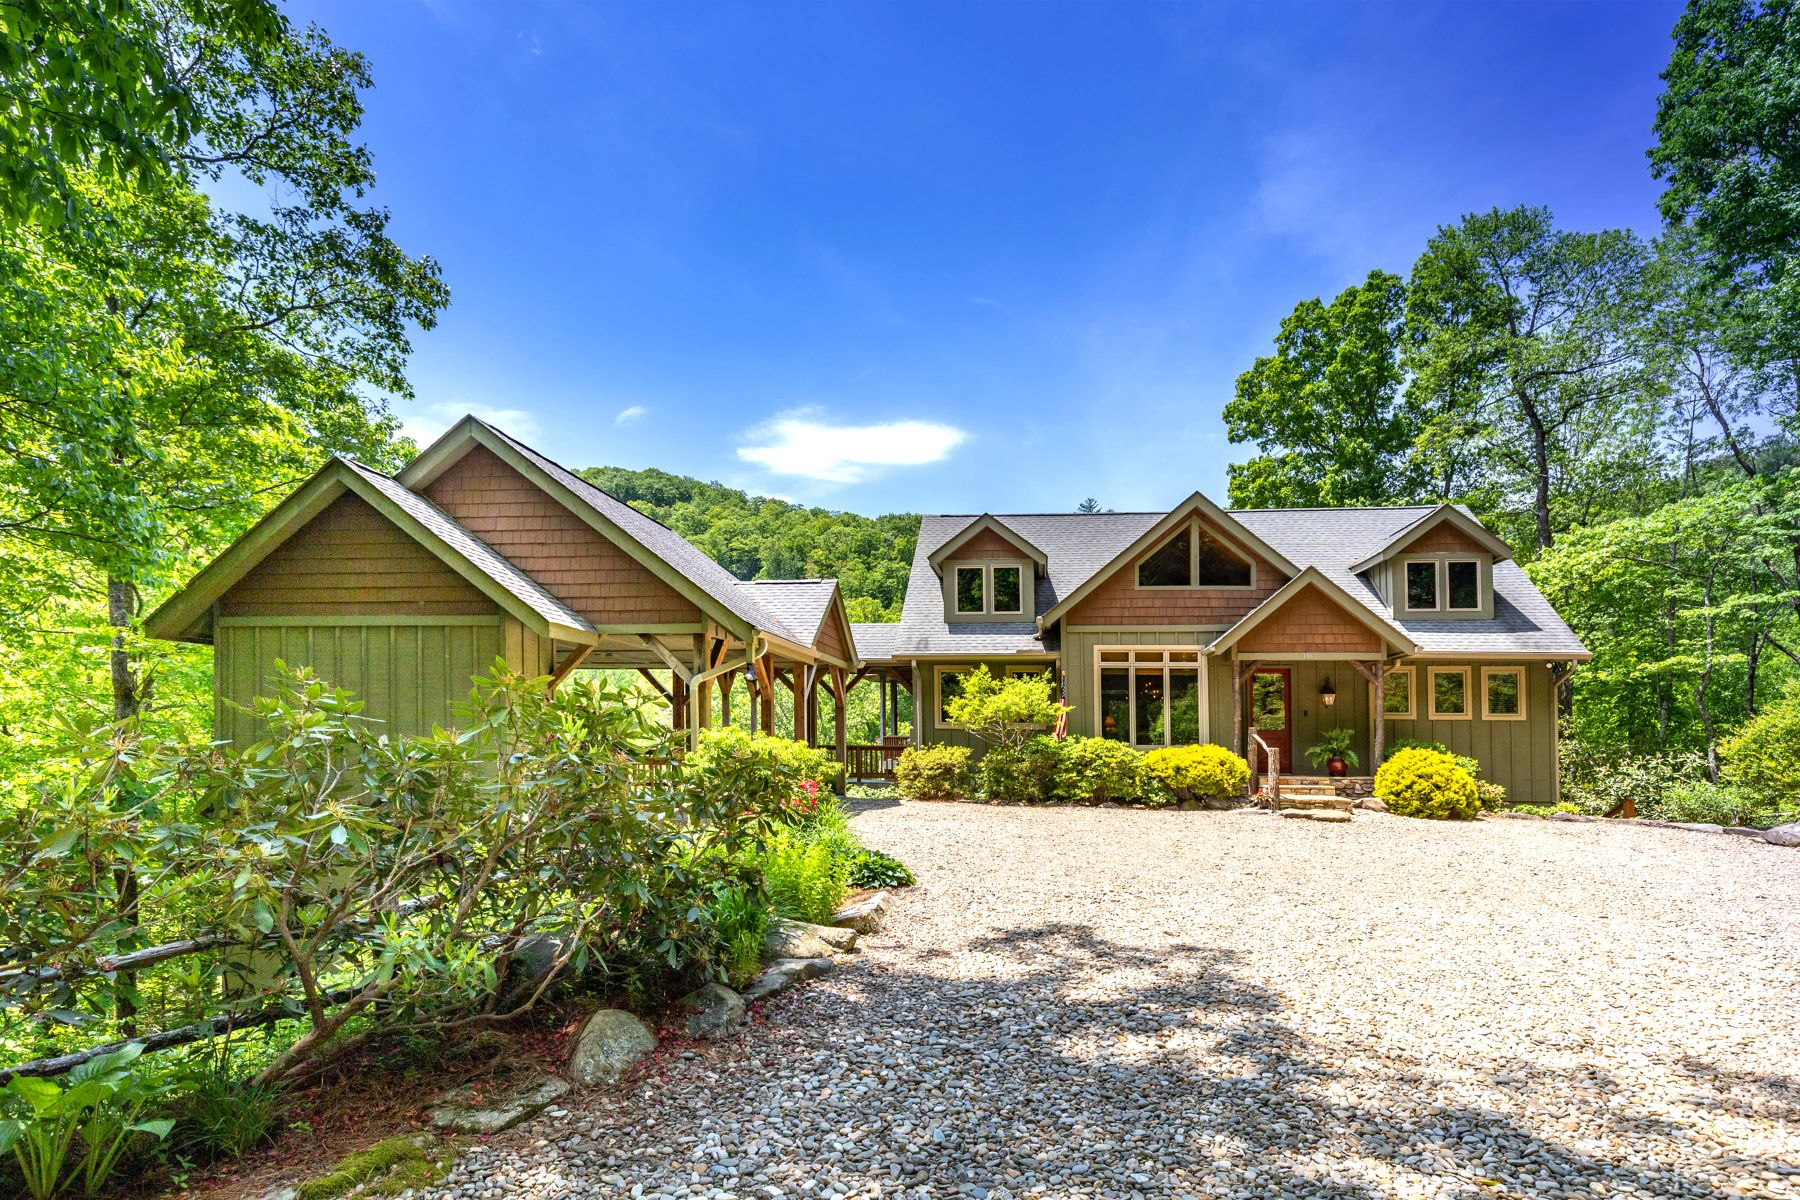 Single Family Homes for Sale at 130 Keowee Trail Lake Toxaway, North Carolina 28747 United States